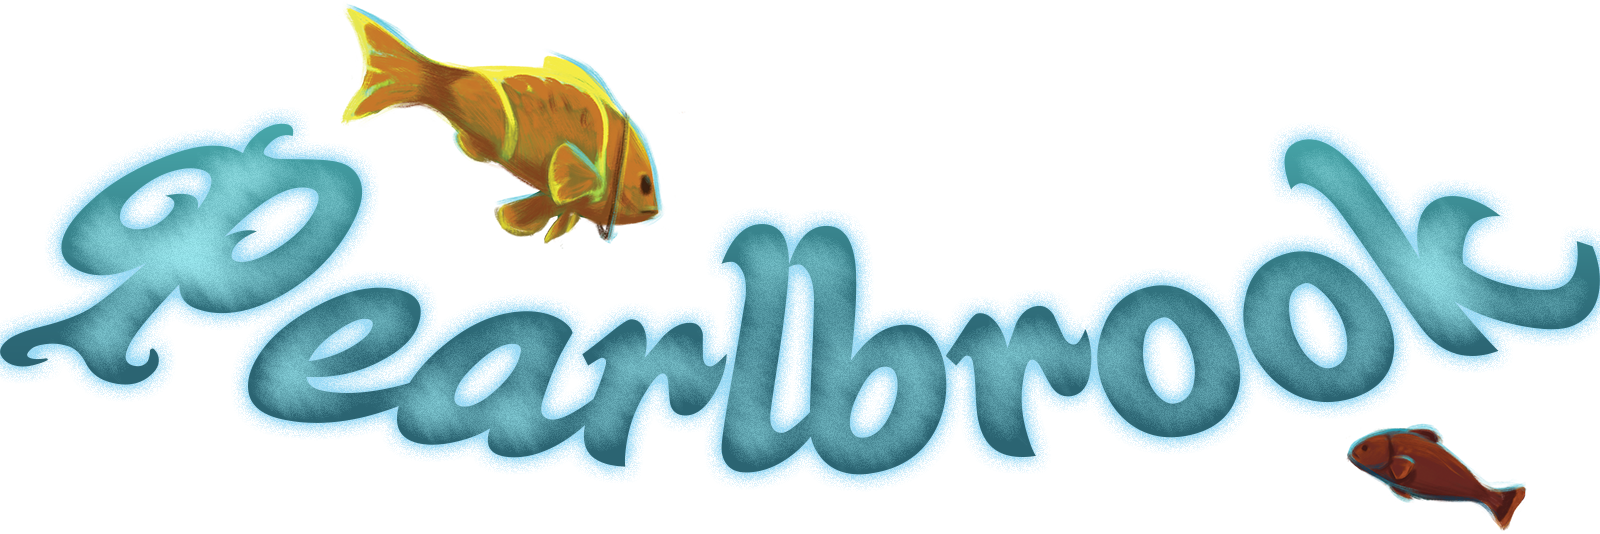 !Everdell-Logo_Pearlbrook.png